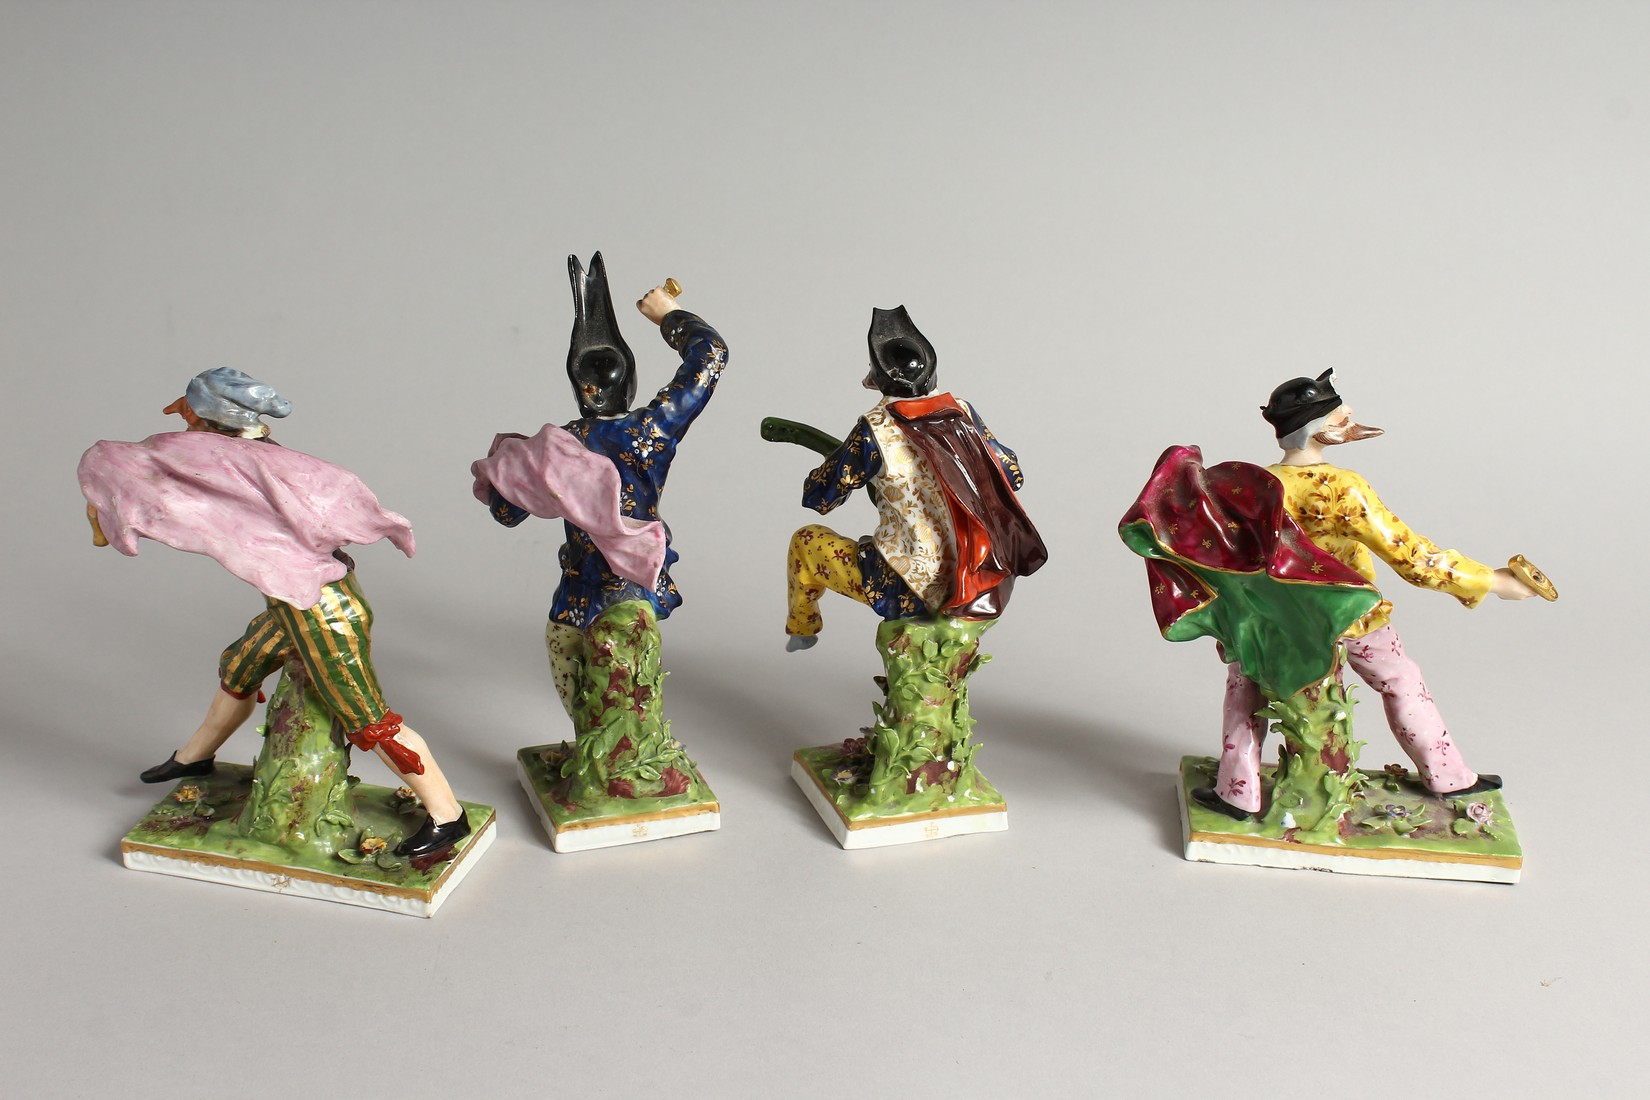 """A SET OF FOUR """"COMMEDIA DELL ARTE """" STYLE FIGURES, LATE 19TH CENTURY/EARLY 20TH CENTURY, possibly by - Image 6 of 9"""